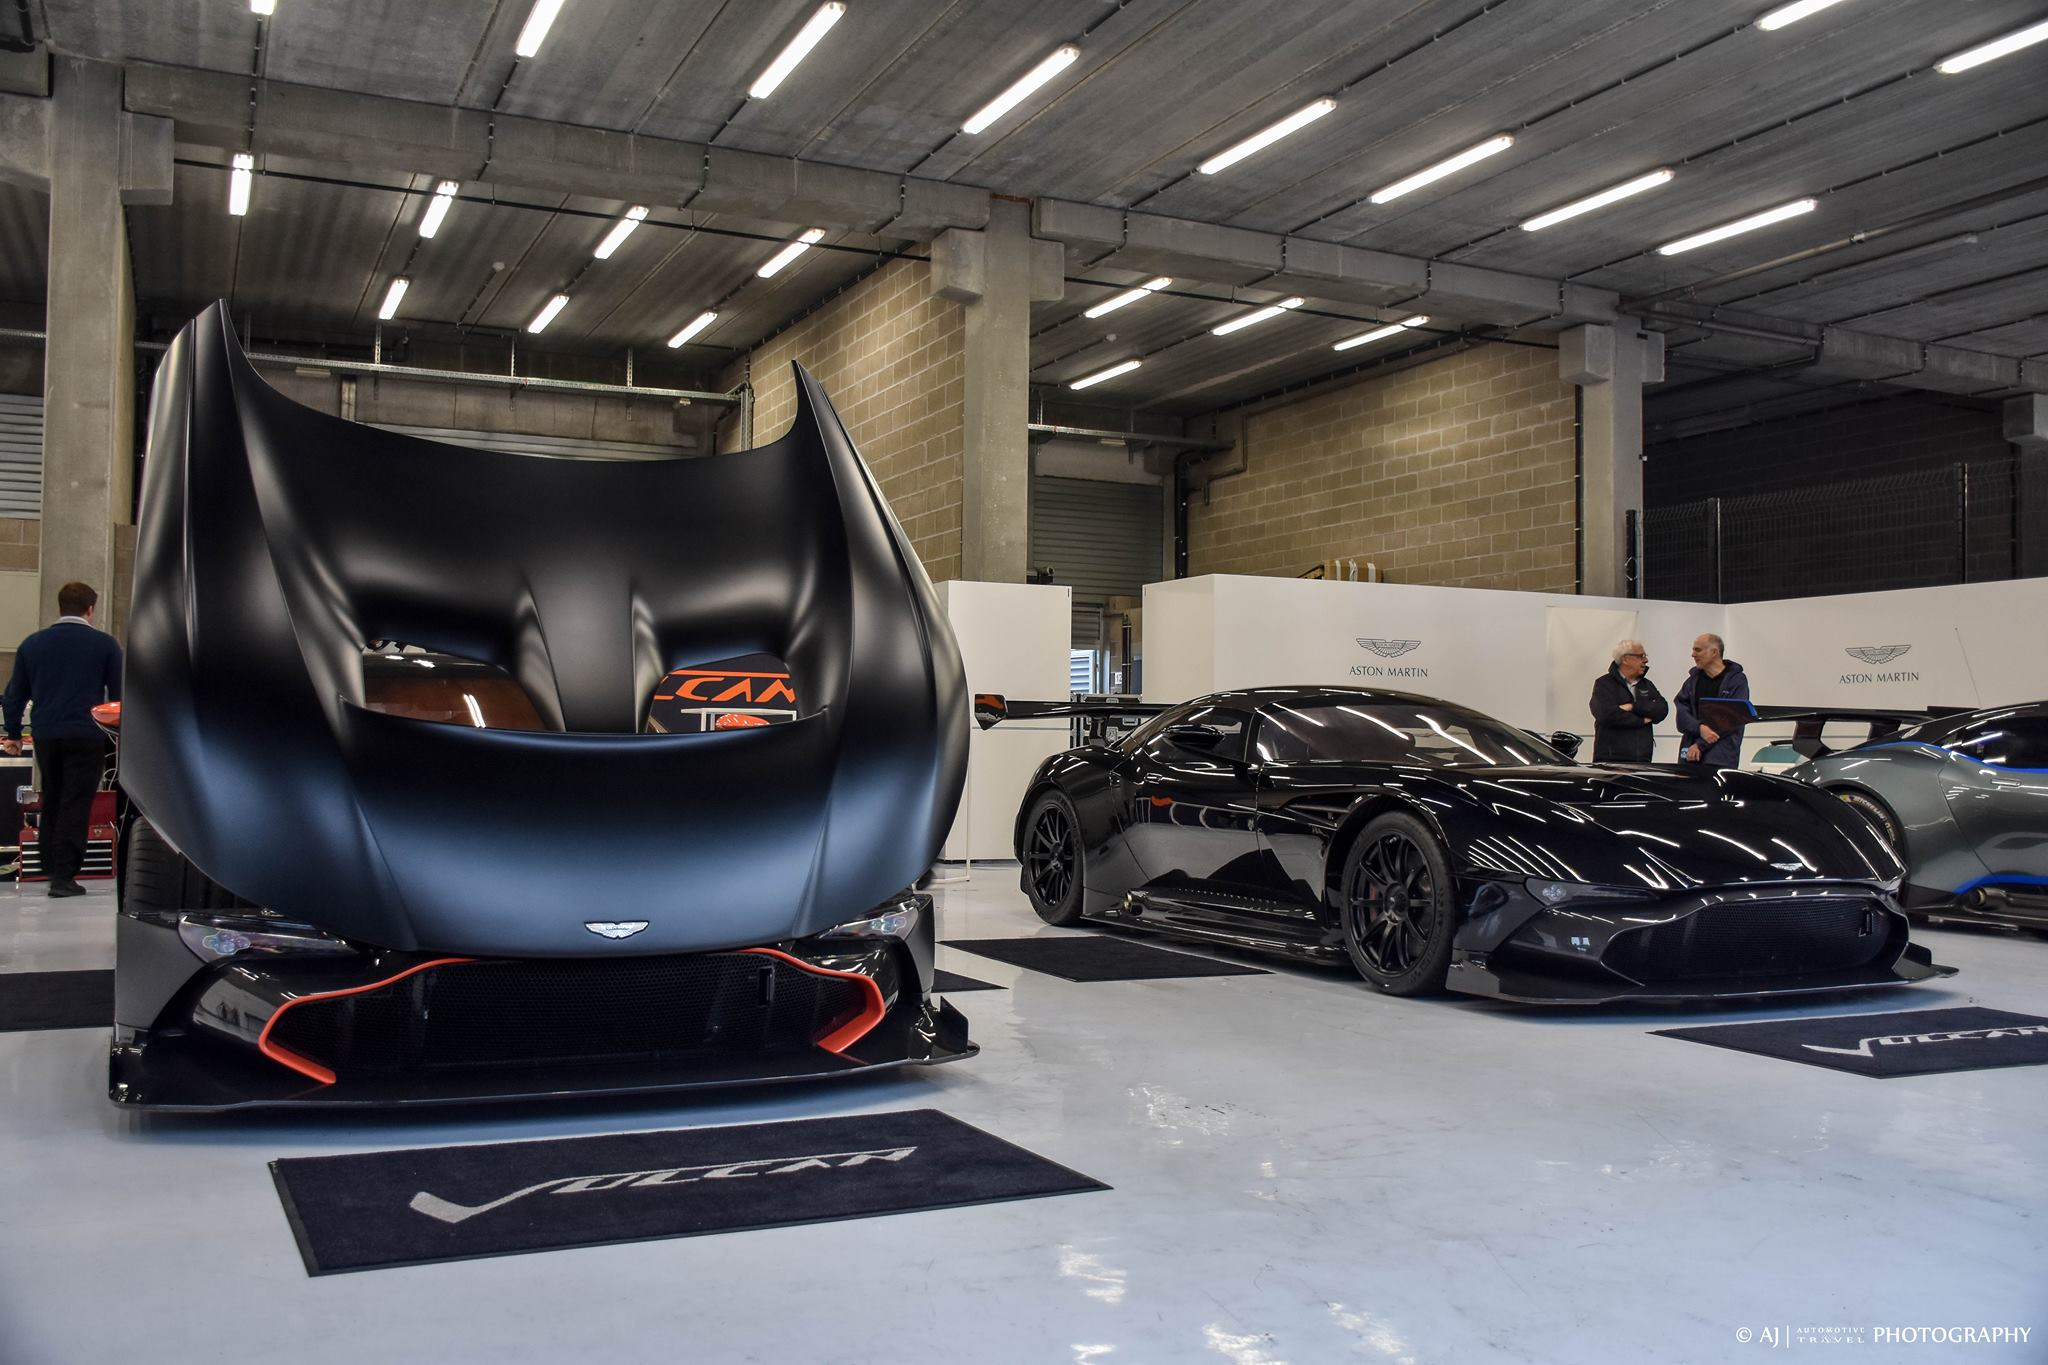 Gallery: Aston Martin Vulcan Attack at Spa-Francorchamps ...